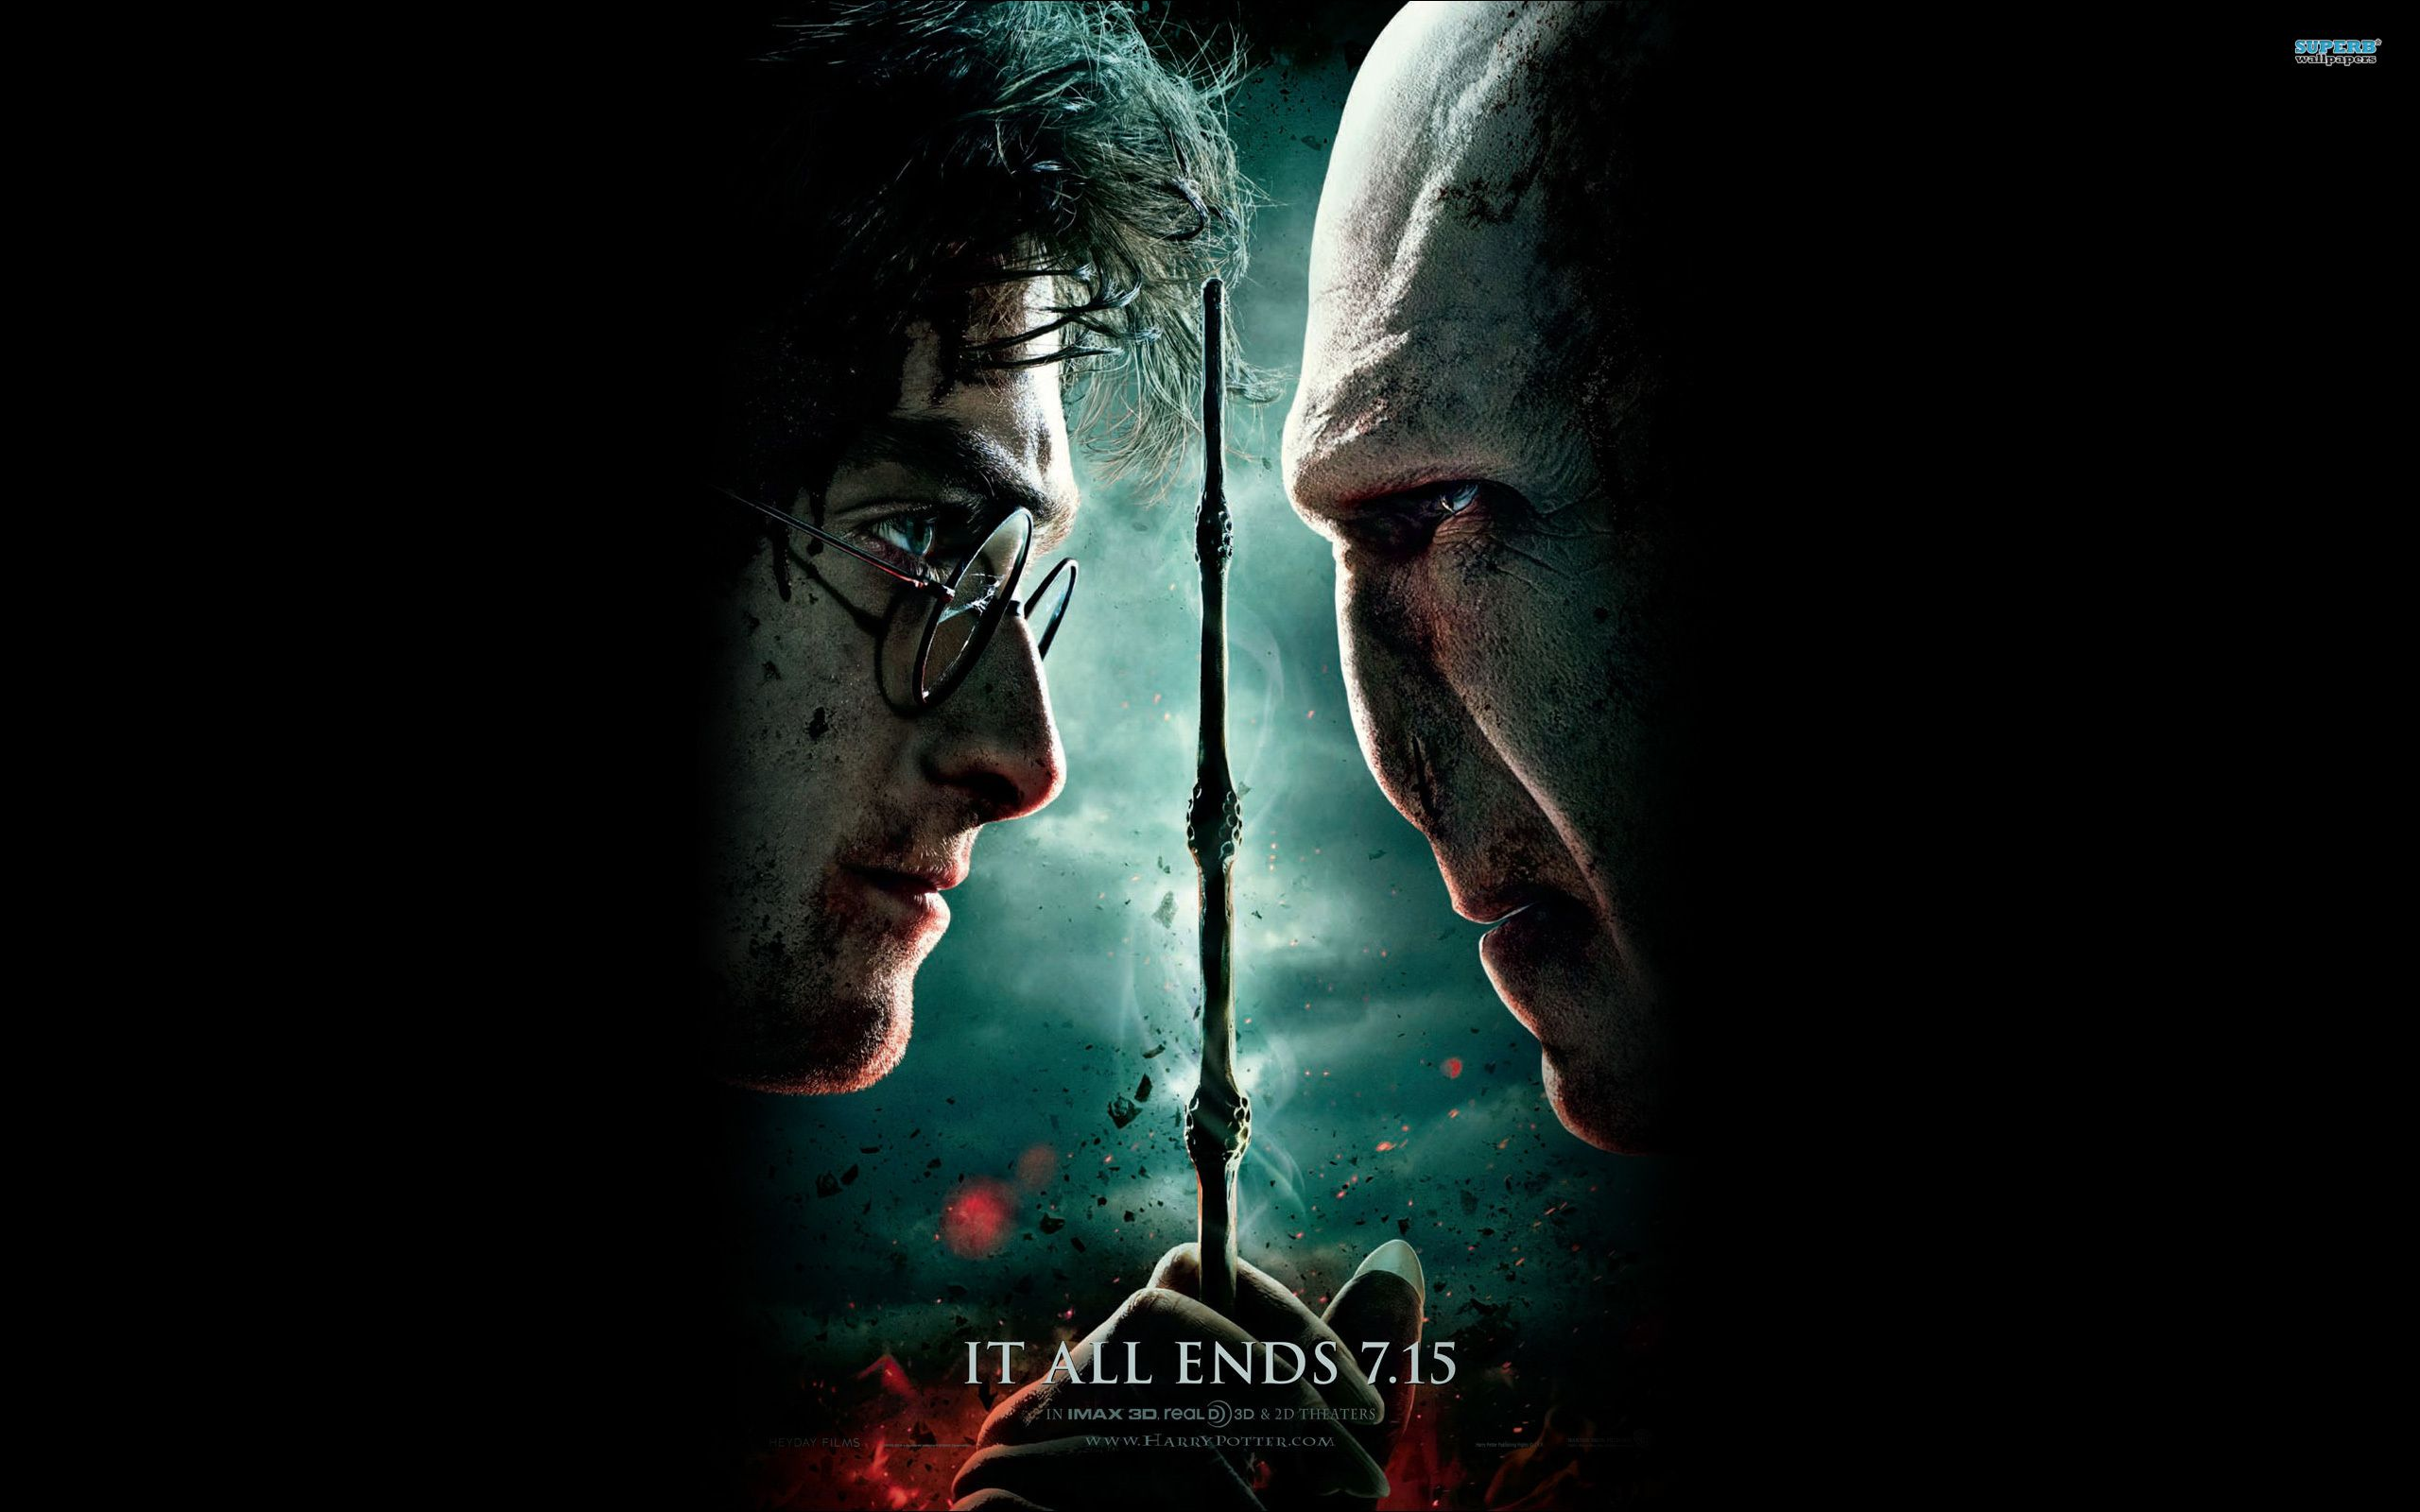 Harry Potter And The Deathly Hallows Wallpaper Images 5rktp